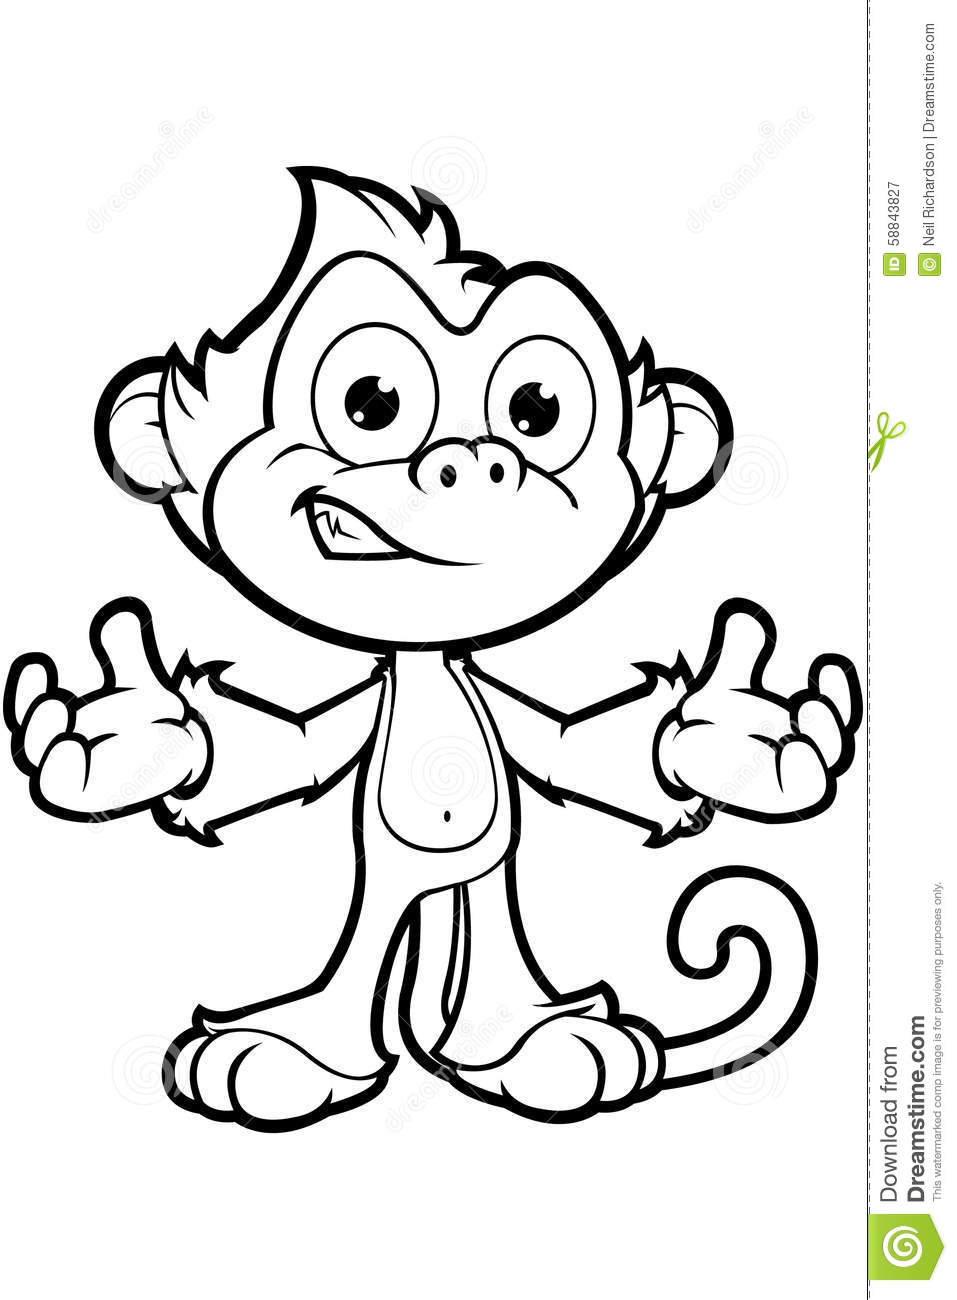 Cheeky Monkey Character Black White Vector